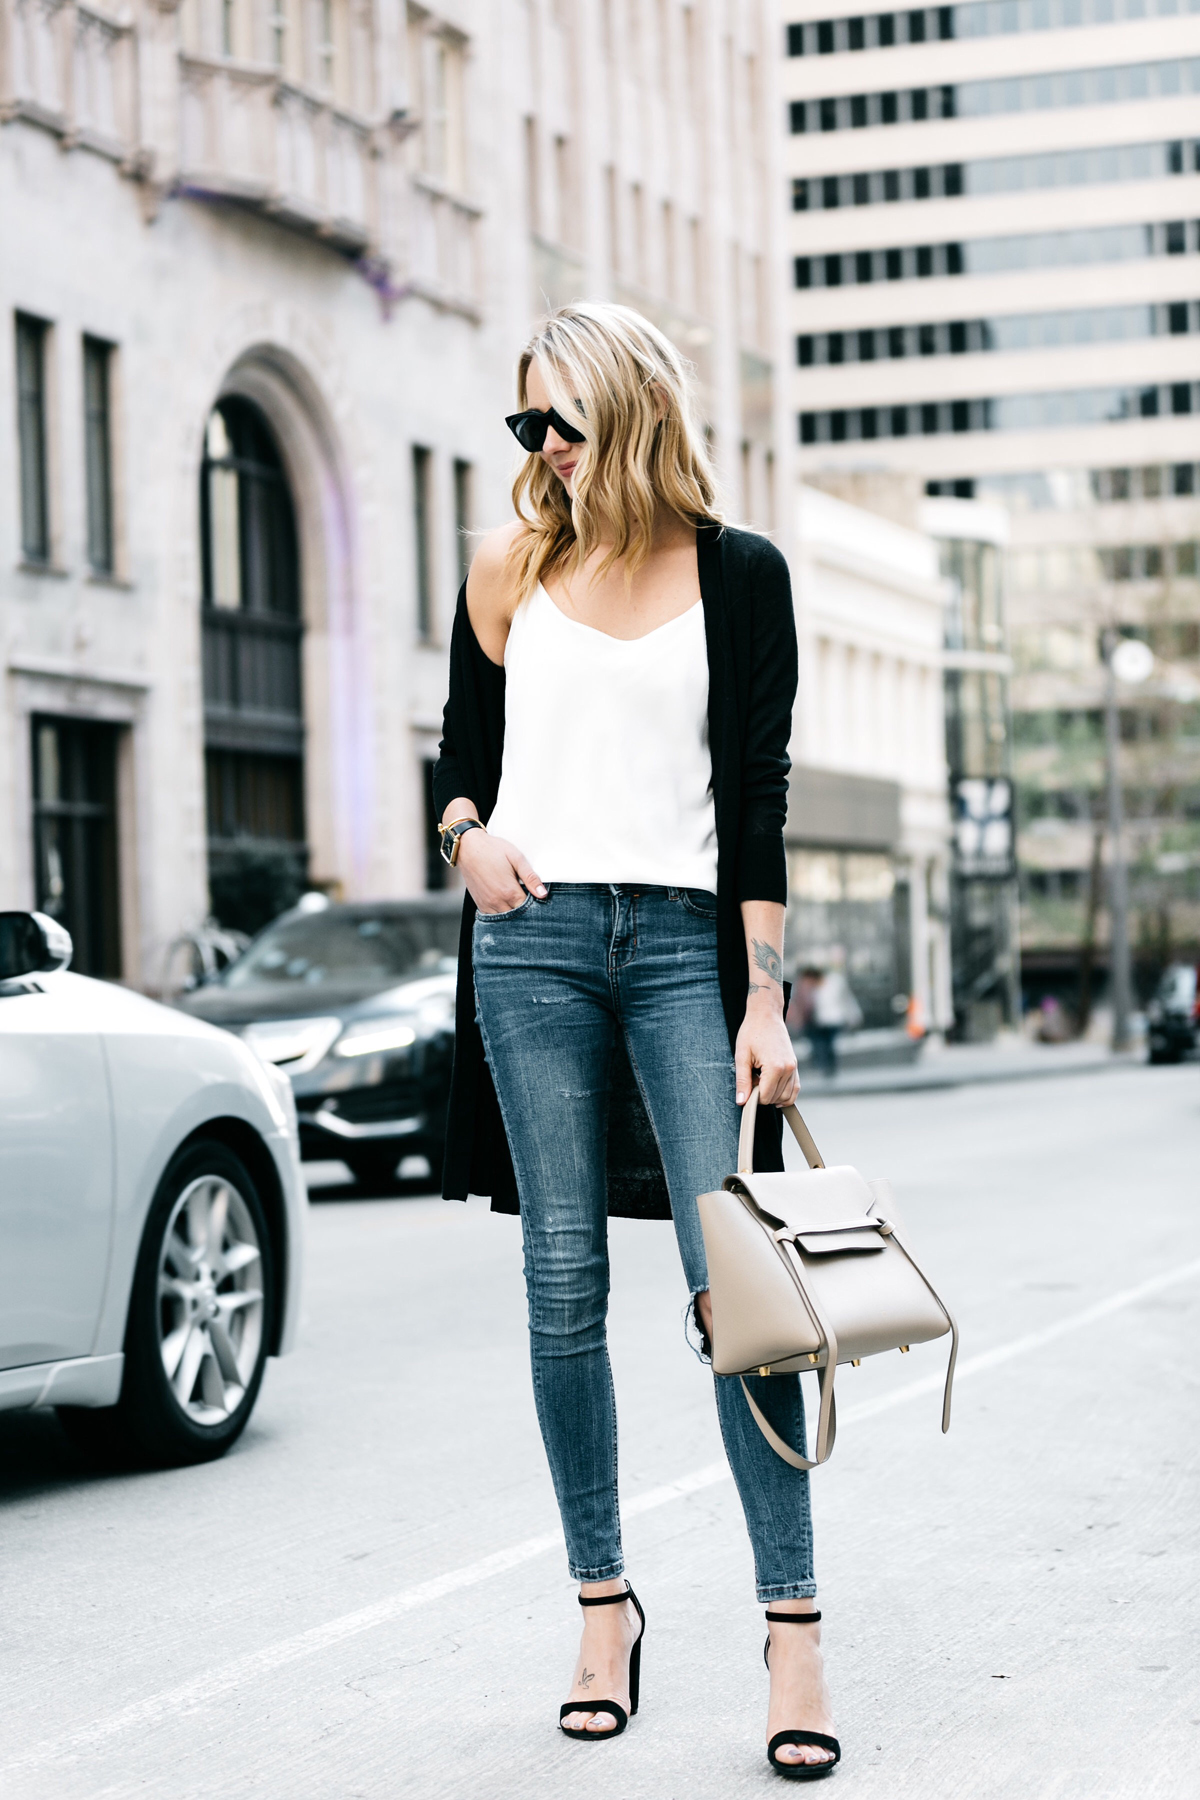 Fashion Jackson, Dallas Blogger, Fashion Blogger, Street Style, Nordstrom Long Black Cardigan, Club Monaco White Cami, Zara Denim Ripped Skinny Jeans, Celine Belt Bag, Steve Madden Carrson Black Ankle Strap Heeled Sandals